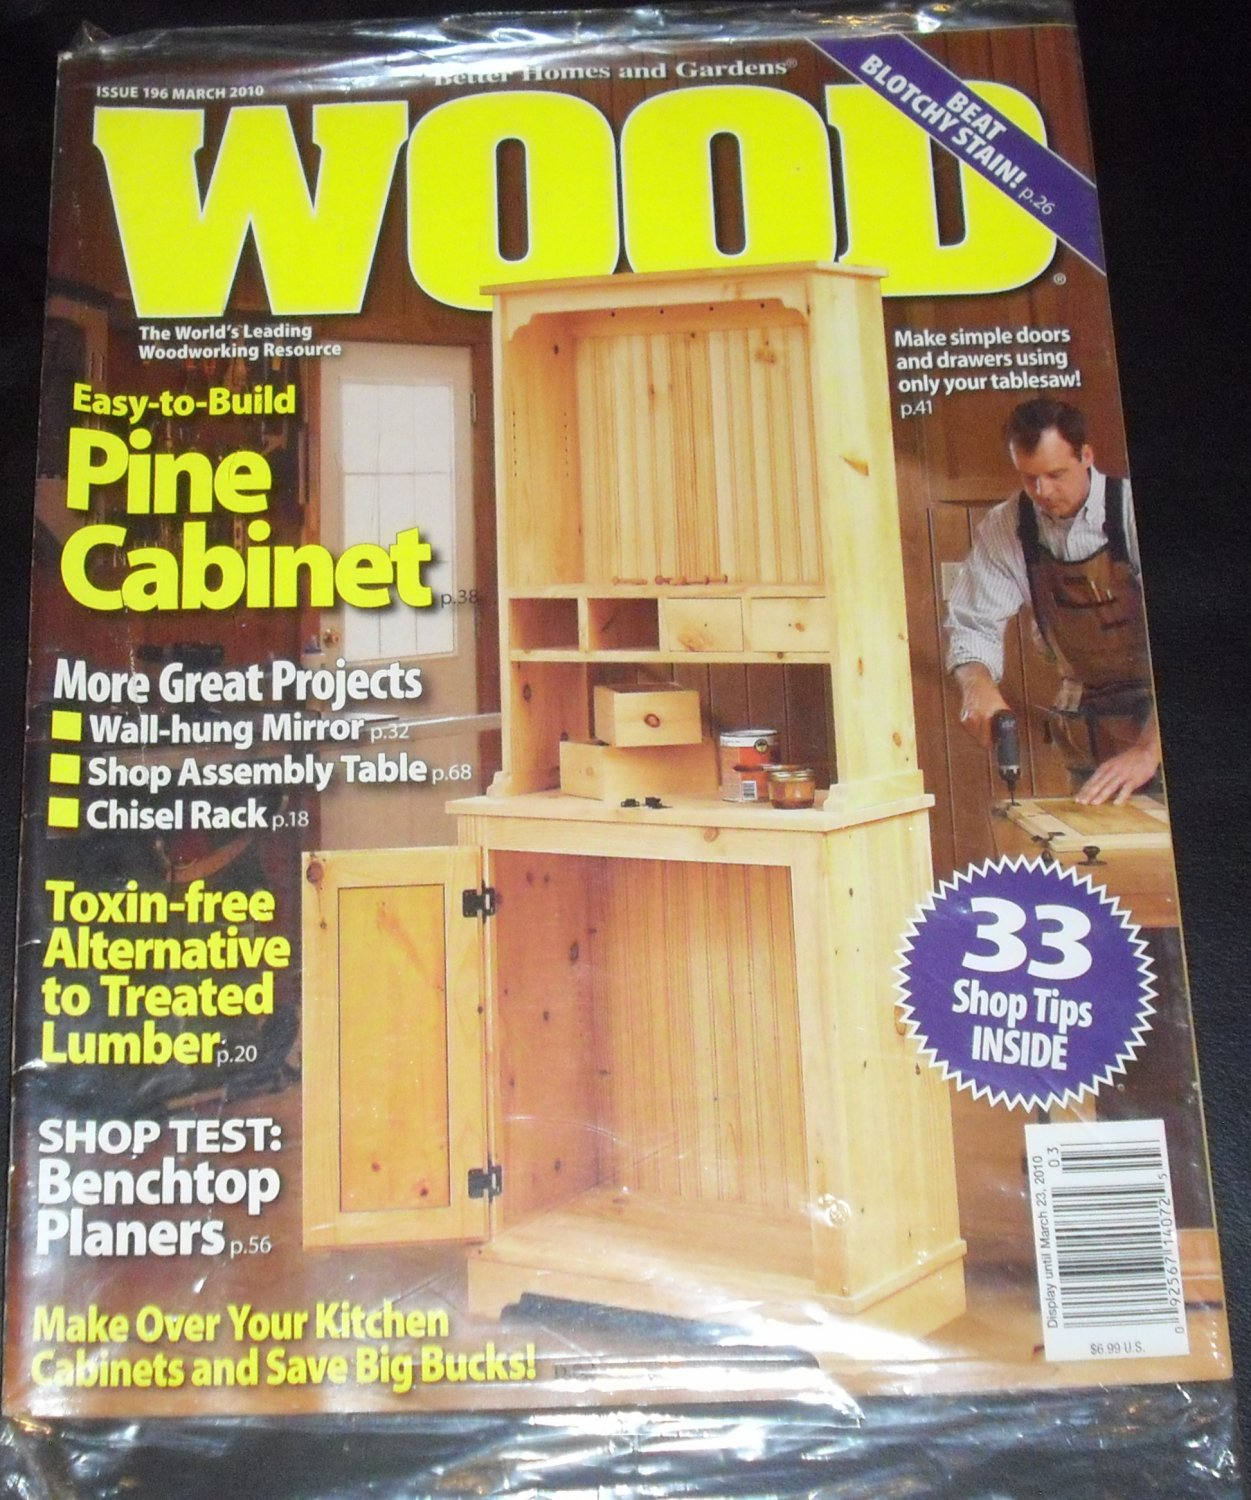 Better homes and gardens wood magazine march 2010 March better homes and gardens